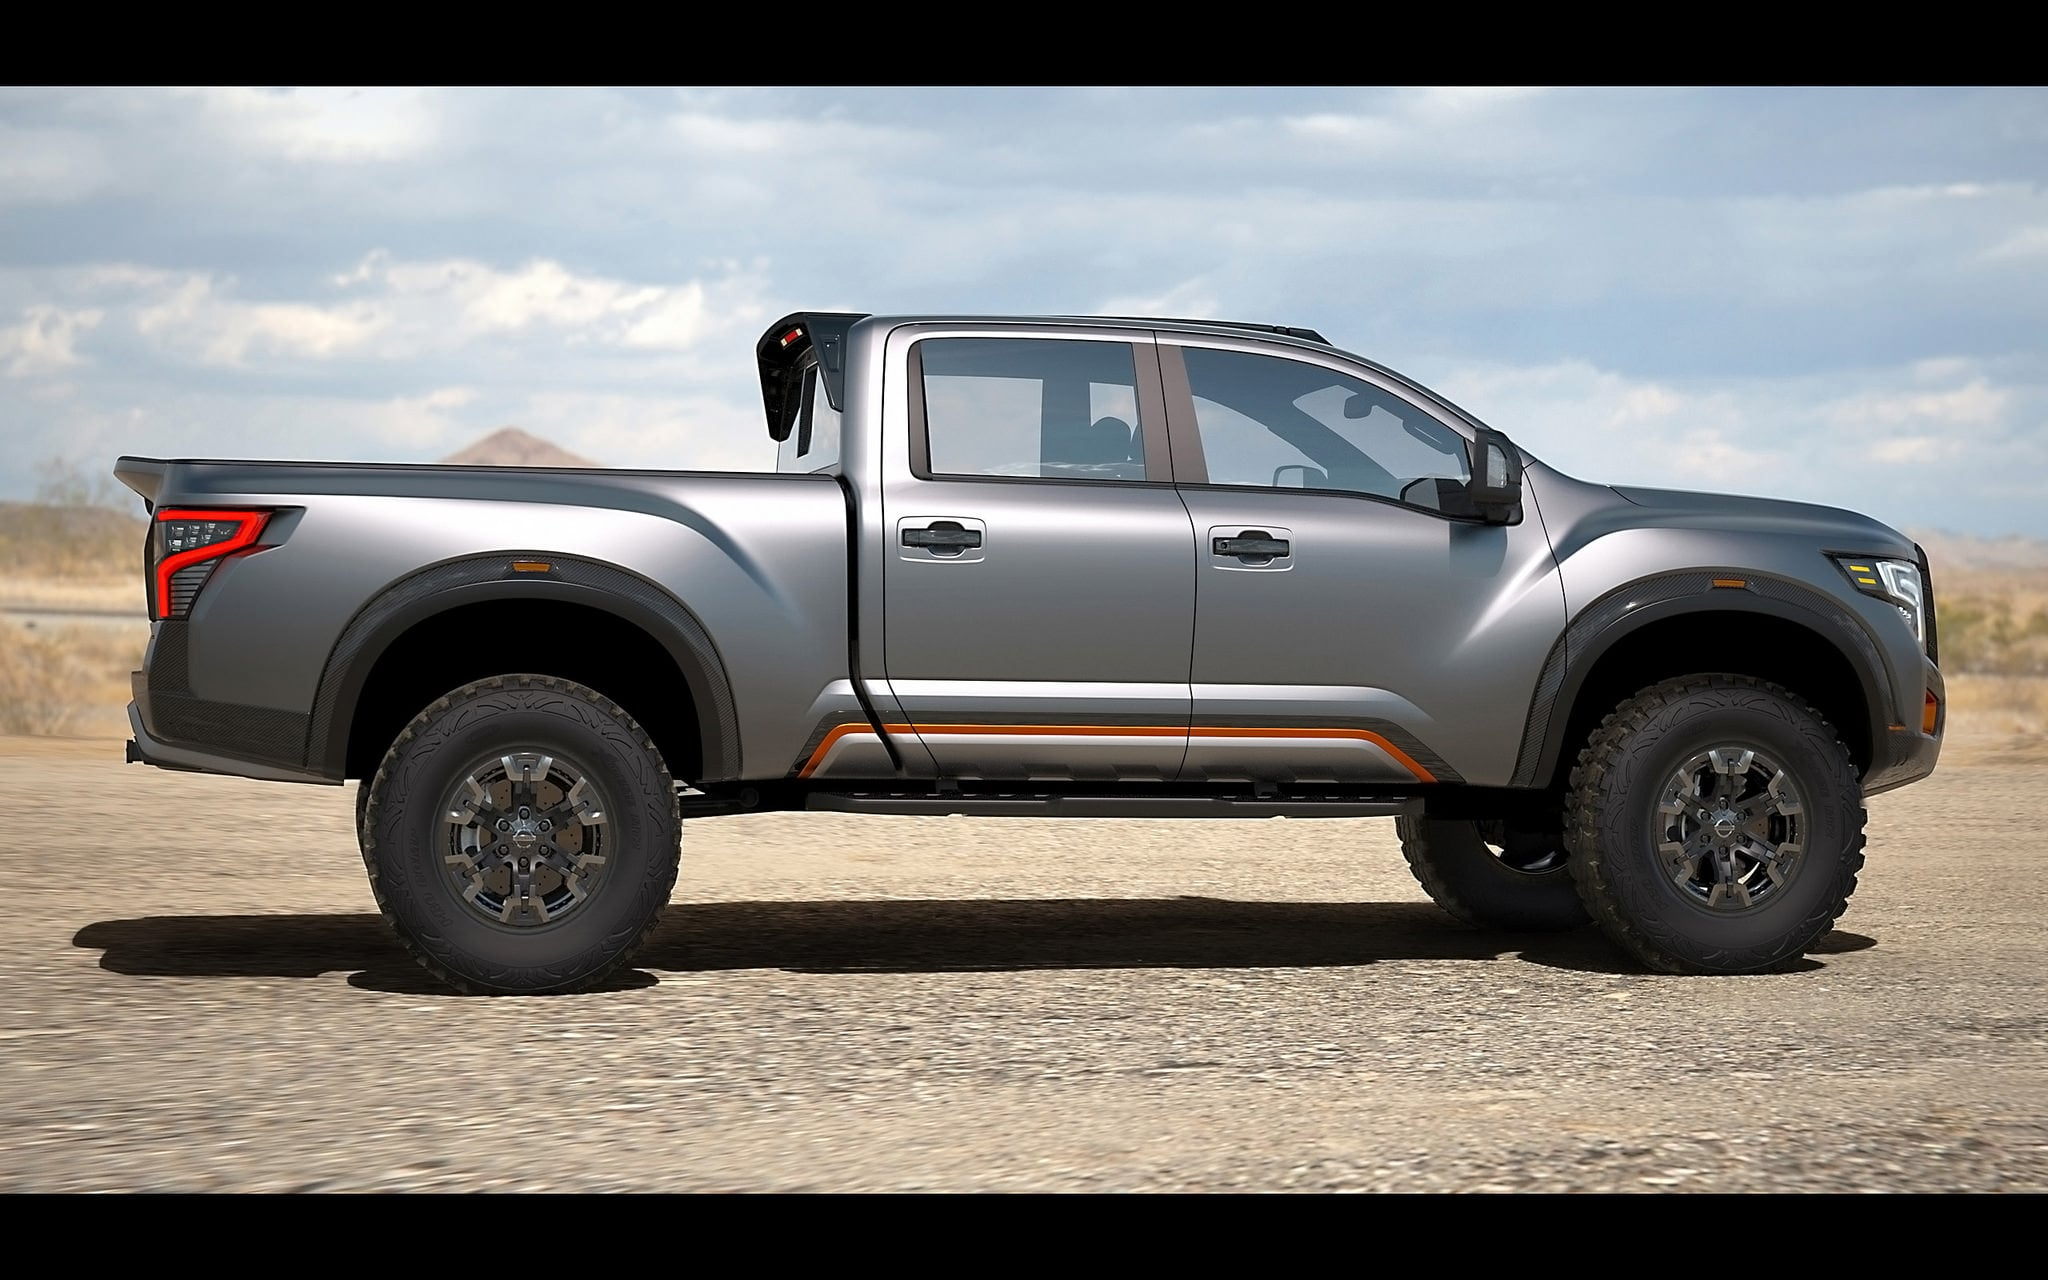 2016 Nissan Titan Warrior also 2018 Toyota Tundra Concept Rumors Redesign News additionally Before After furthermore Watch as well 1972 Toyota Celica Overview C4195. on toyota tundra car